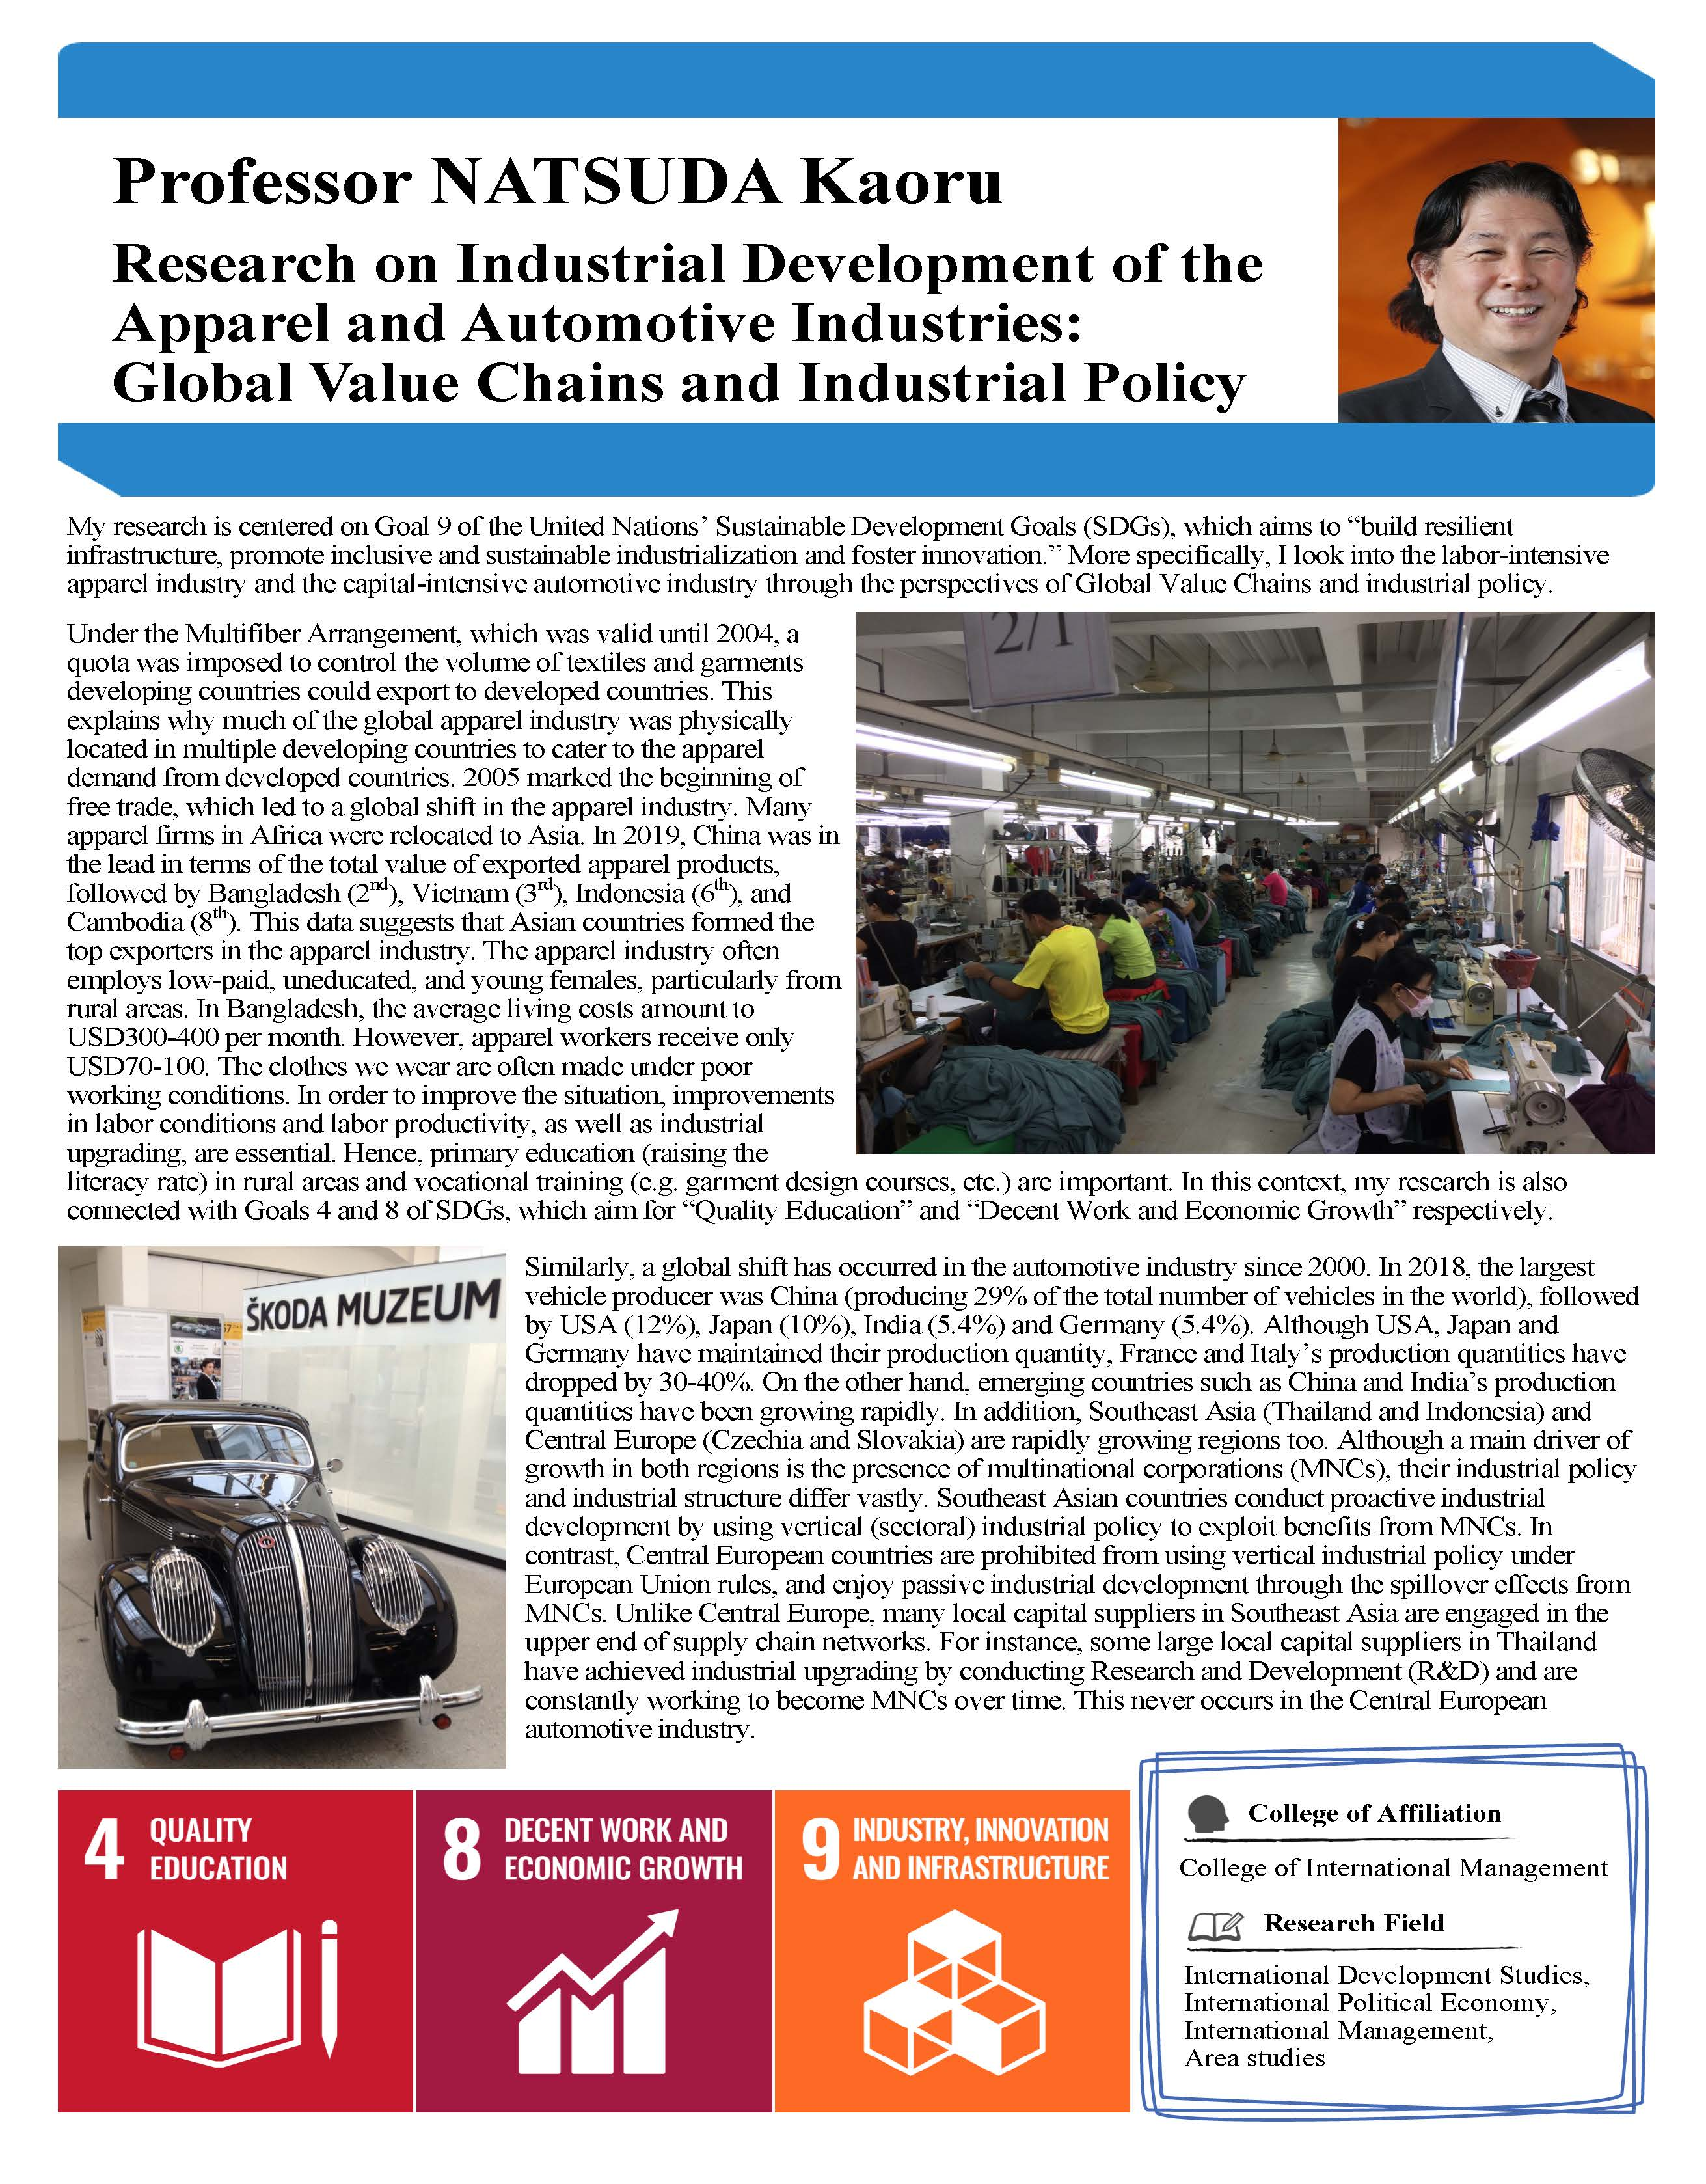 Research on Industrial Development of the Apparel and Automotive Industries: Global Value Chains and Industrial Policy